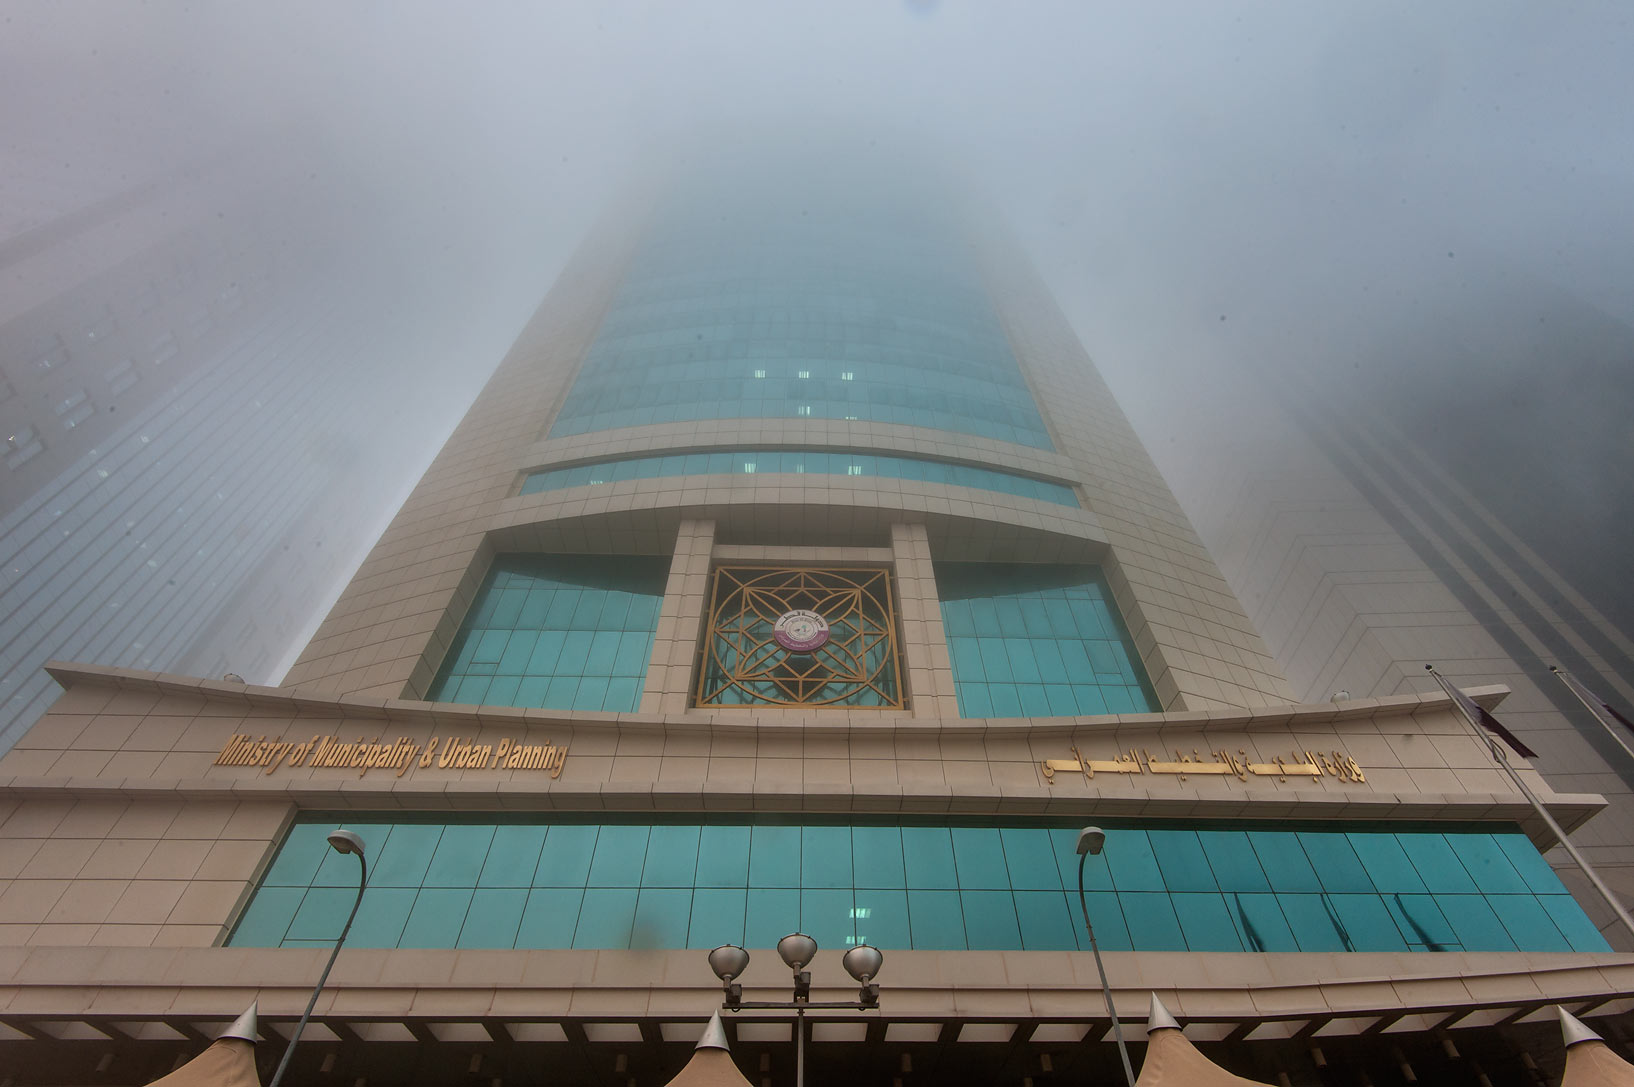 Ministry of Municipality and Urban Planning in West Bay in fog. Doha, Qatar